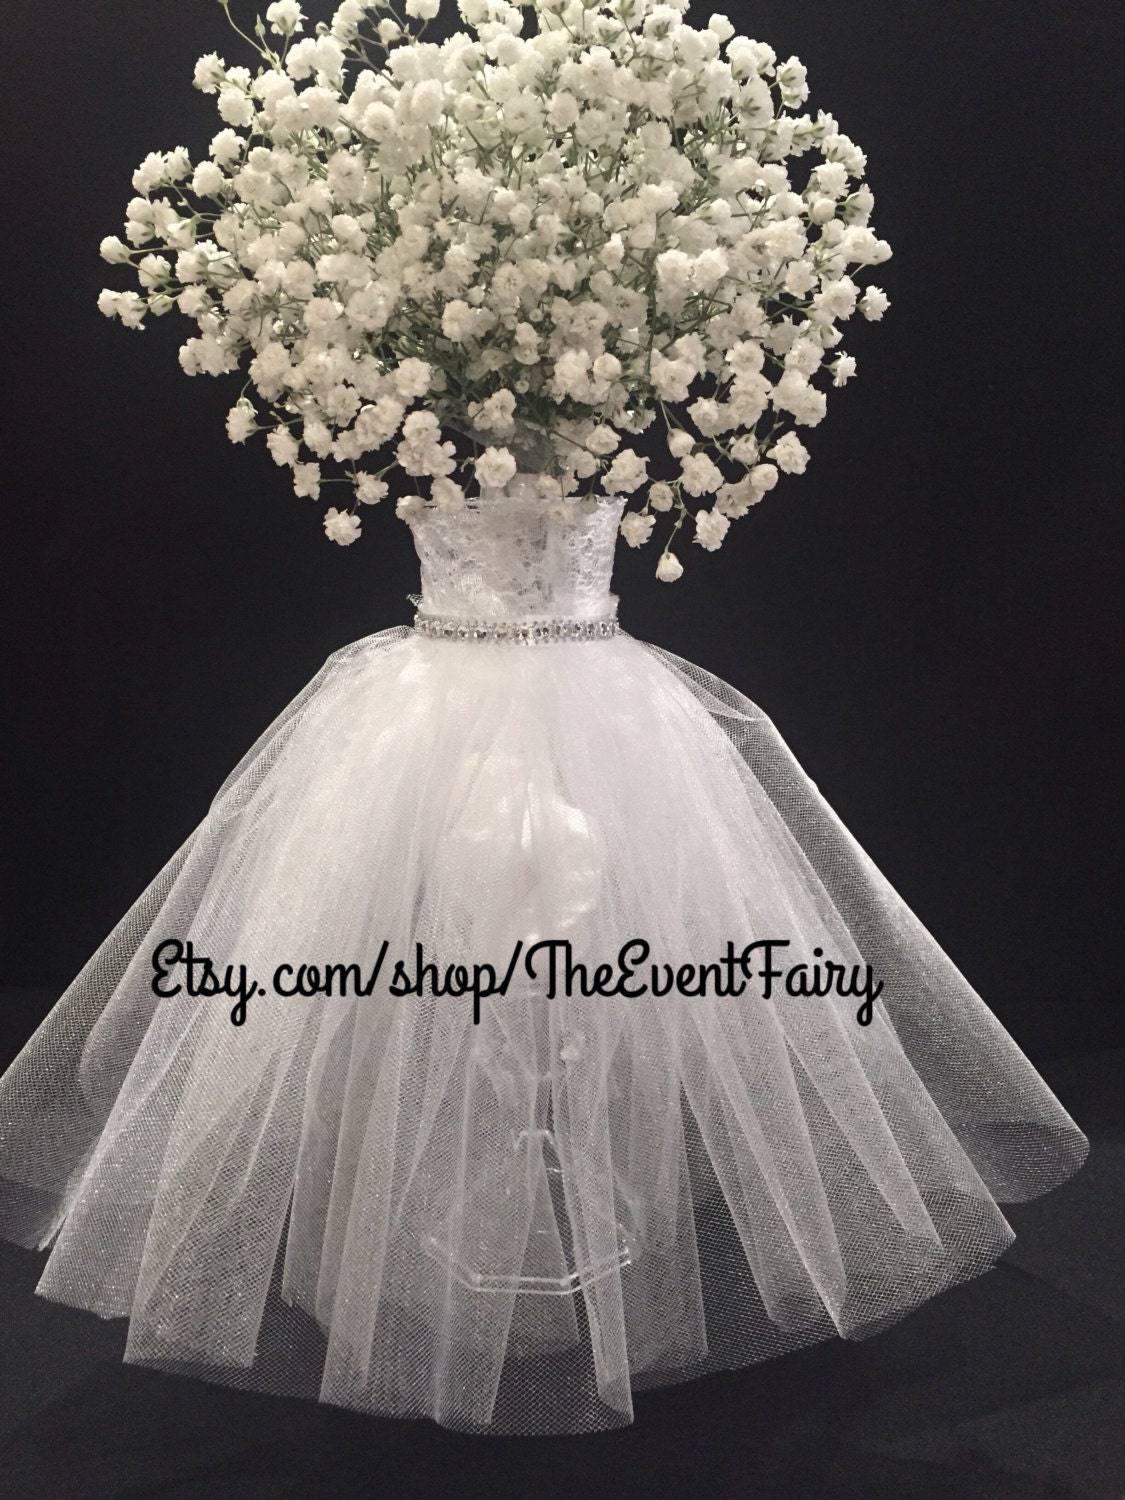 centerpiece wedding dress vase